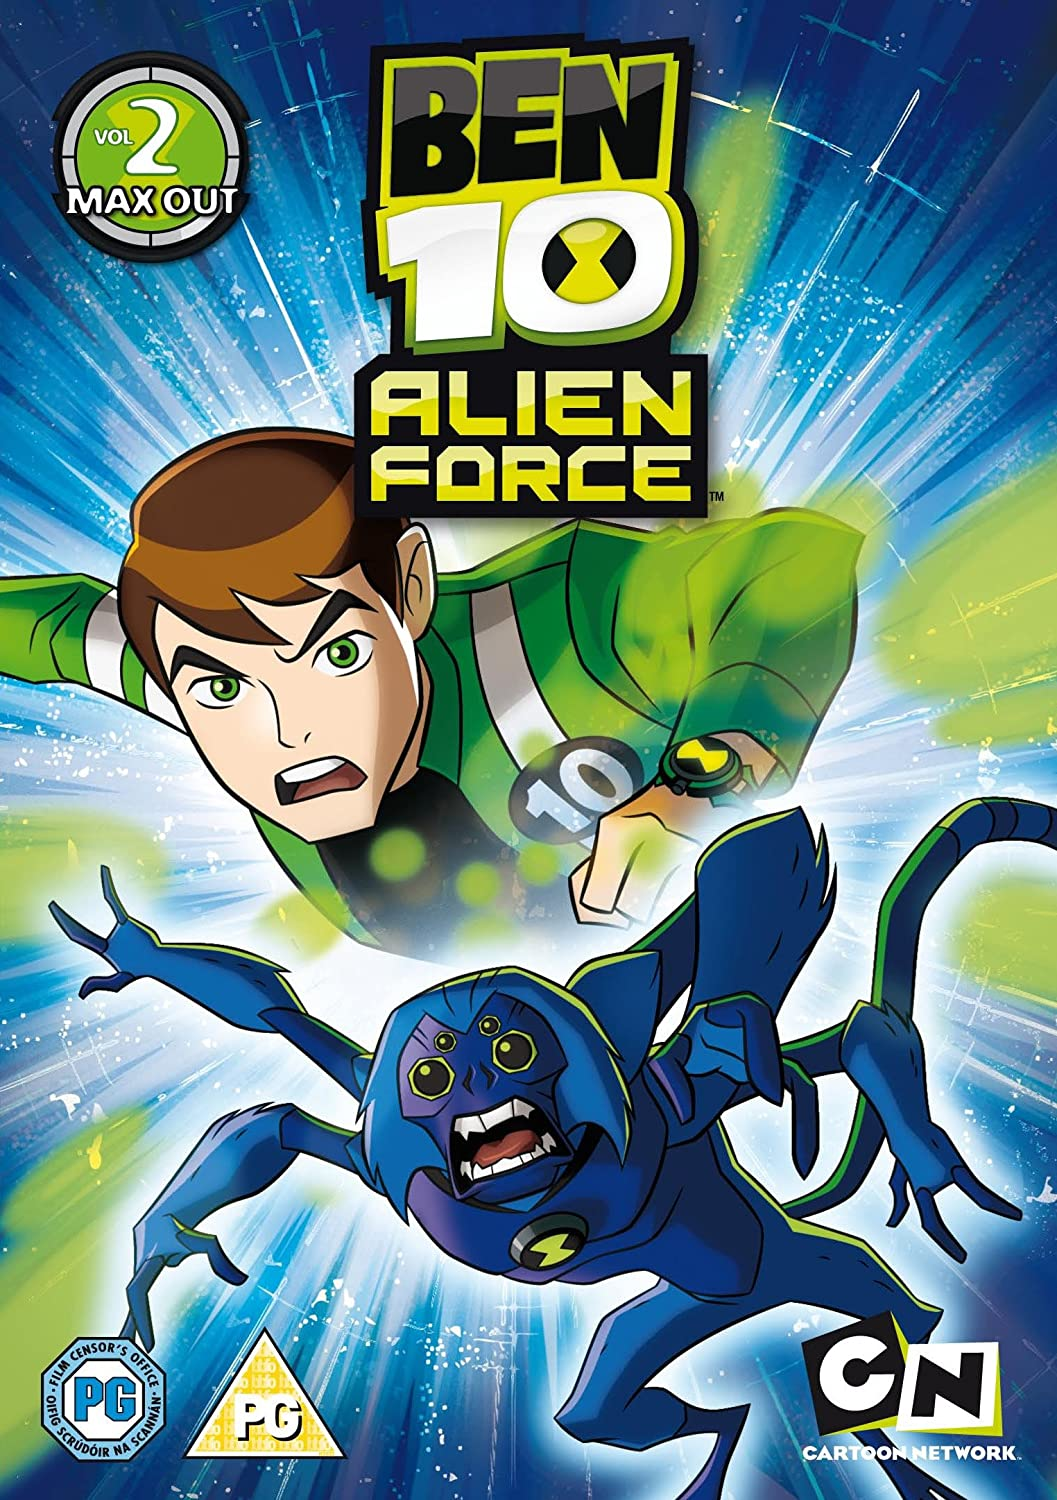 Ben 10  Alien Force Volume 2  Max Out DVD 2010 Amazoncouk